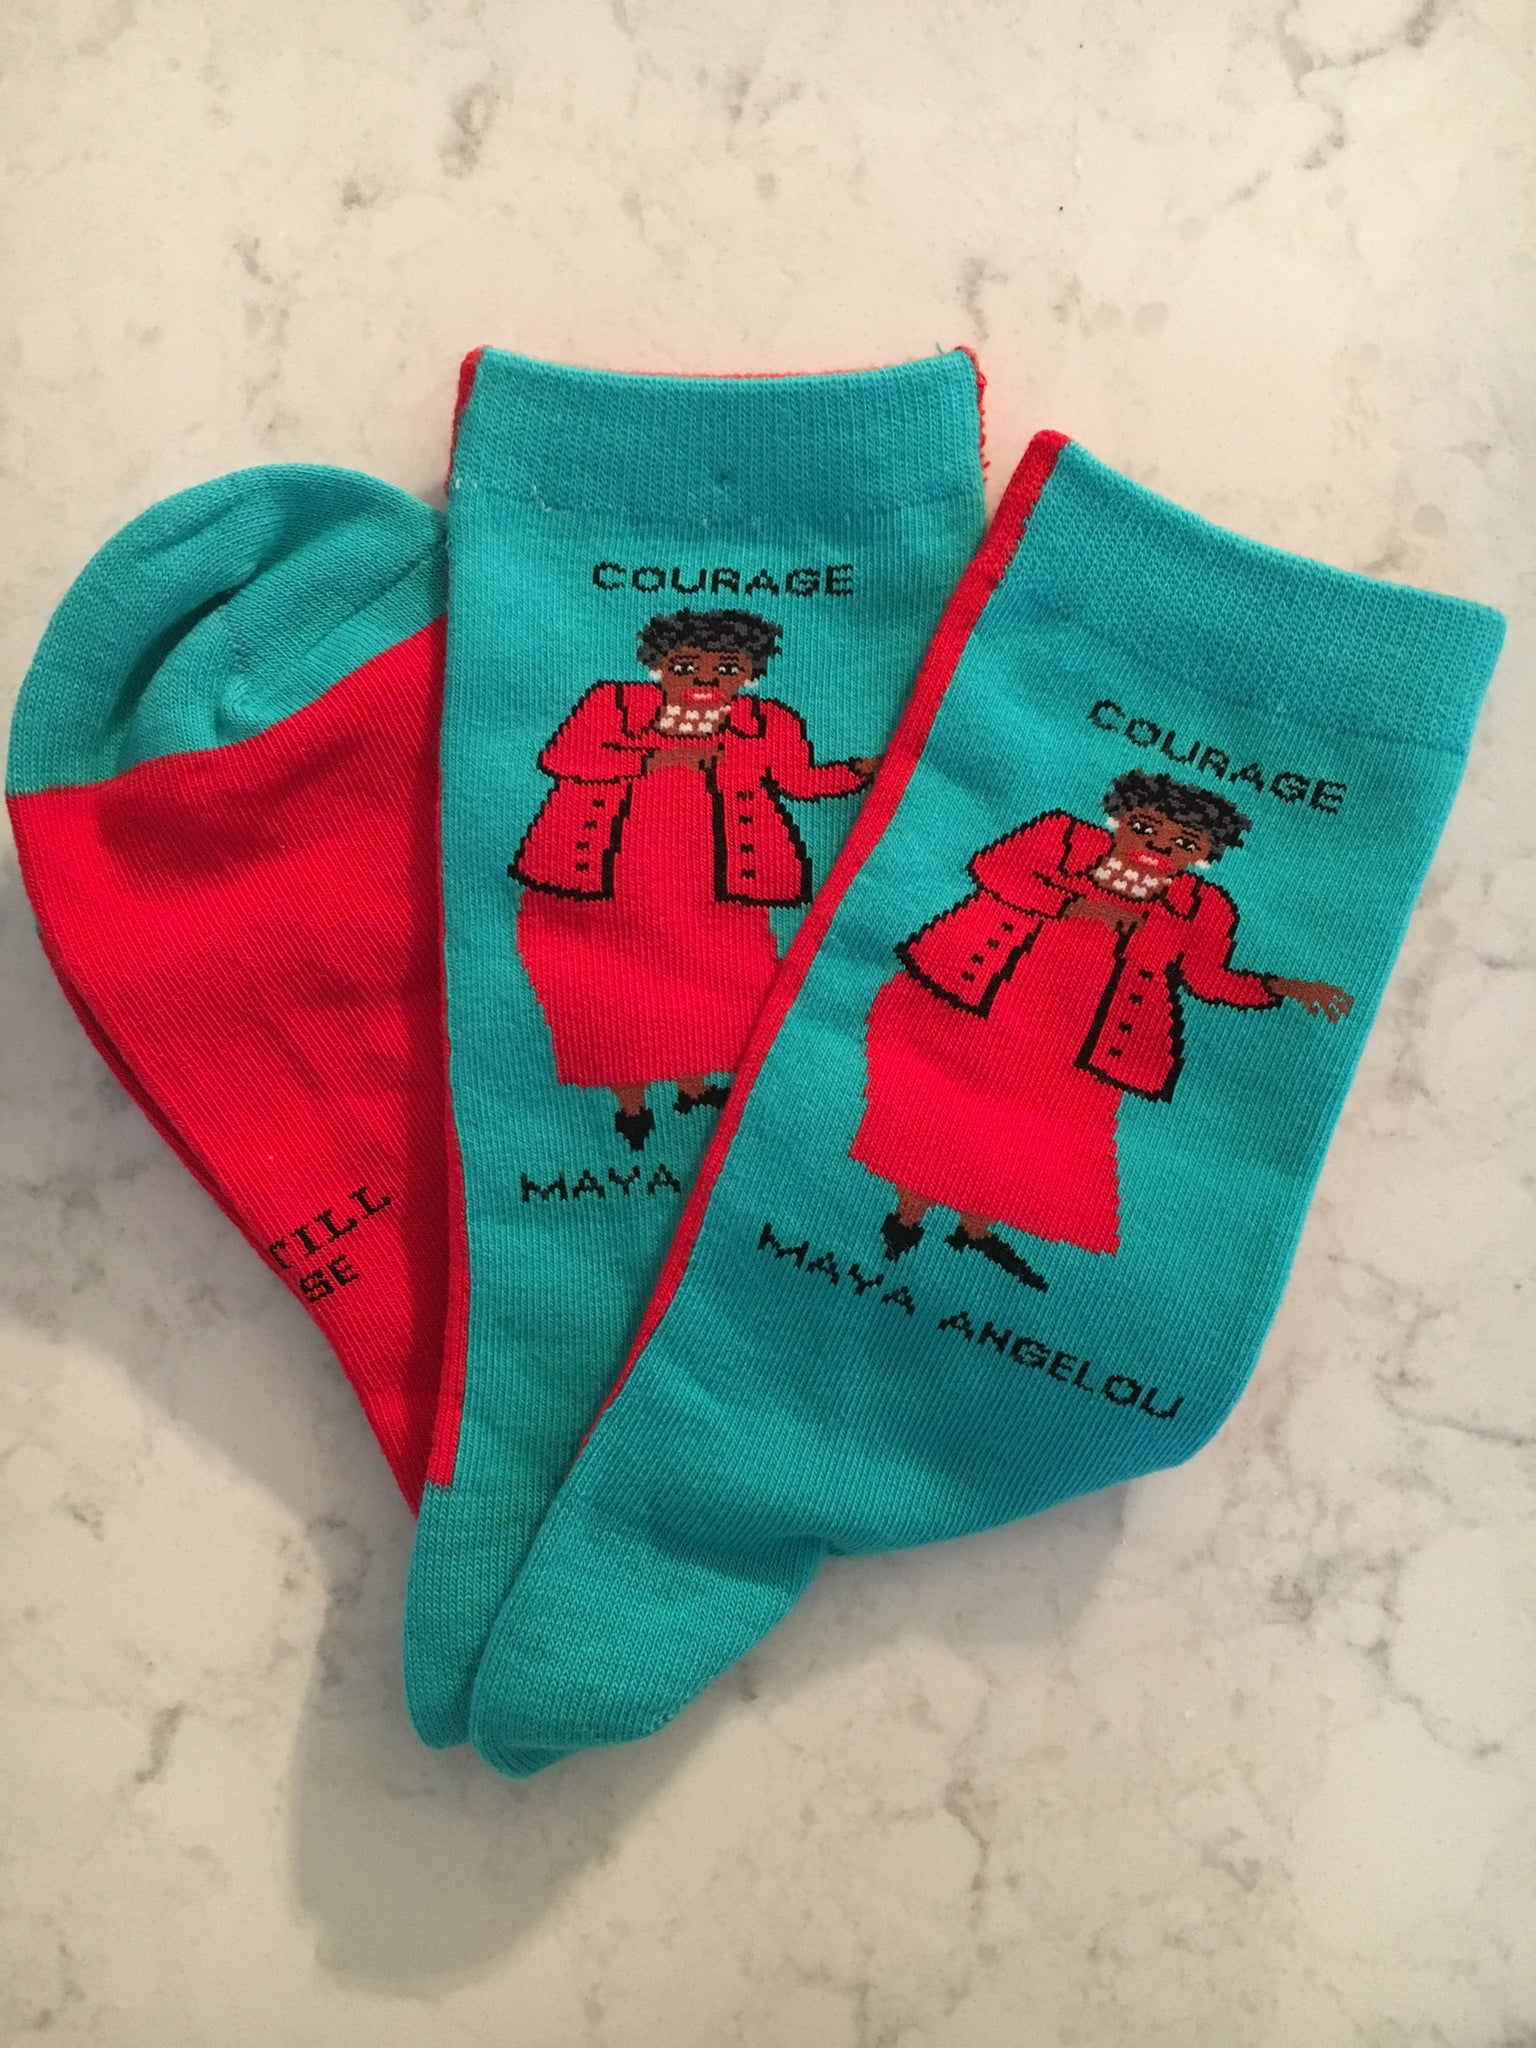 Maya Angelou Crew Socks - Courage